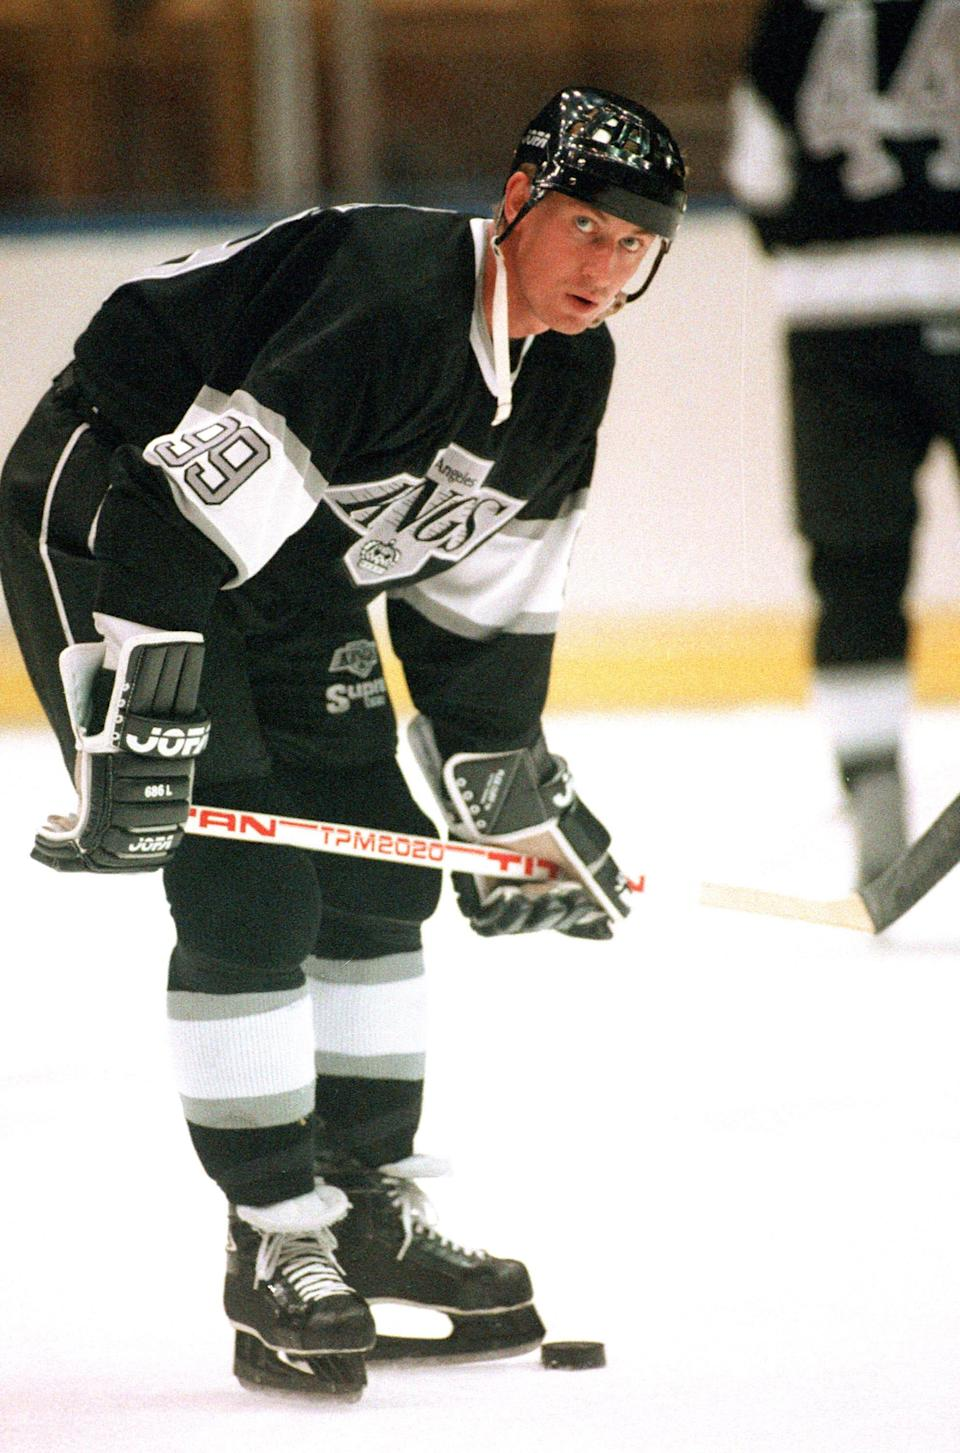 Hockey Hall of Famer Wayne Gretzky was traded from the Edmonton Oilers to the Los Angeles Kings on Aug. 9, 1988, in a deal that sent shock waves throughout Canada.